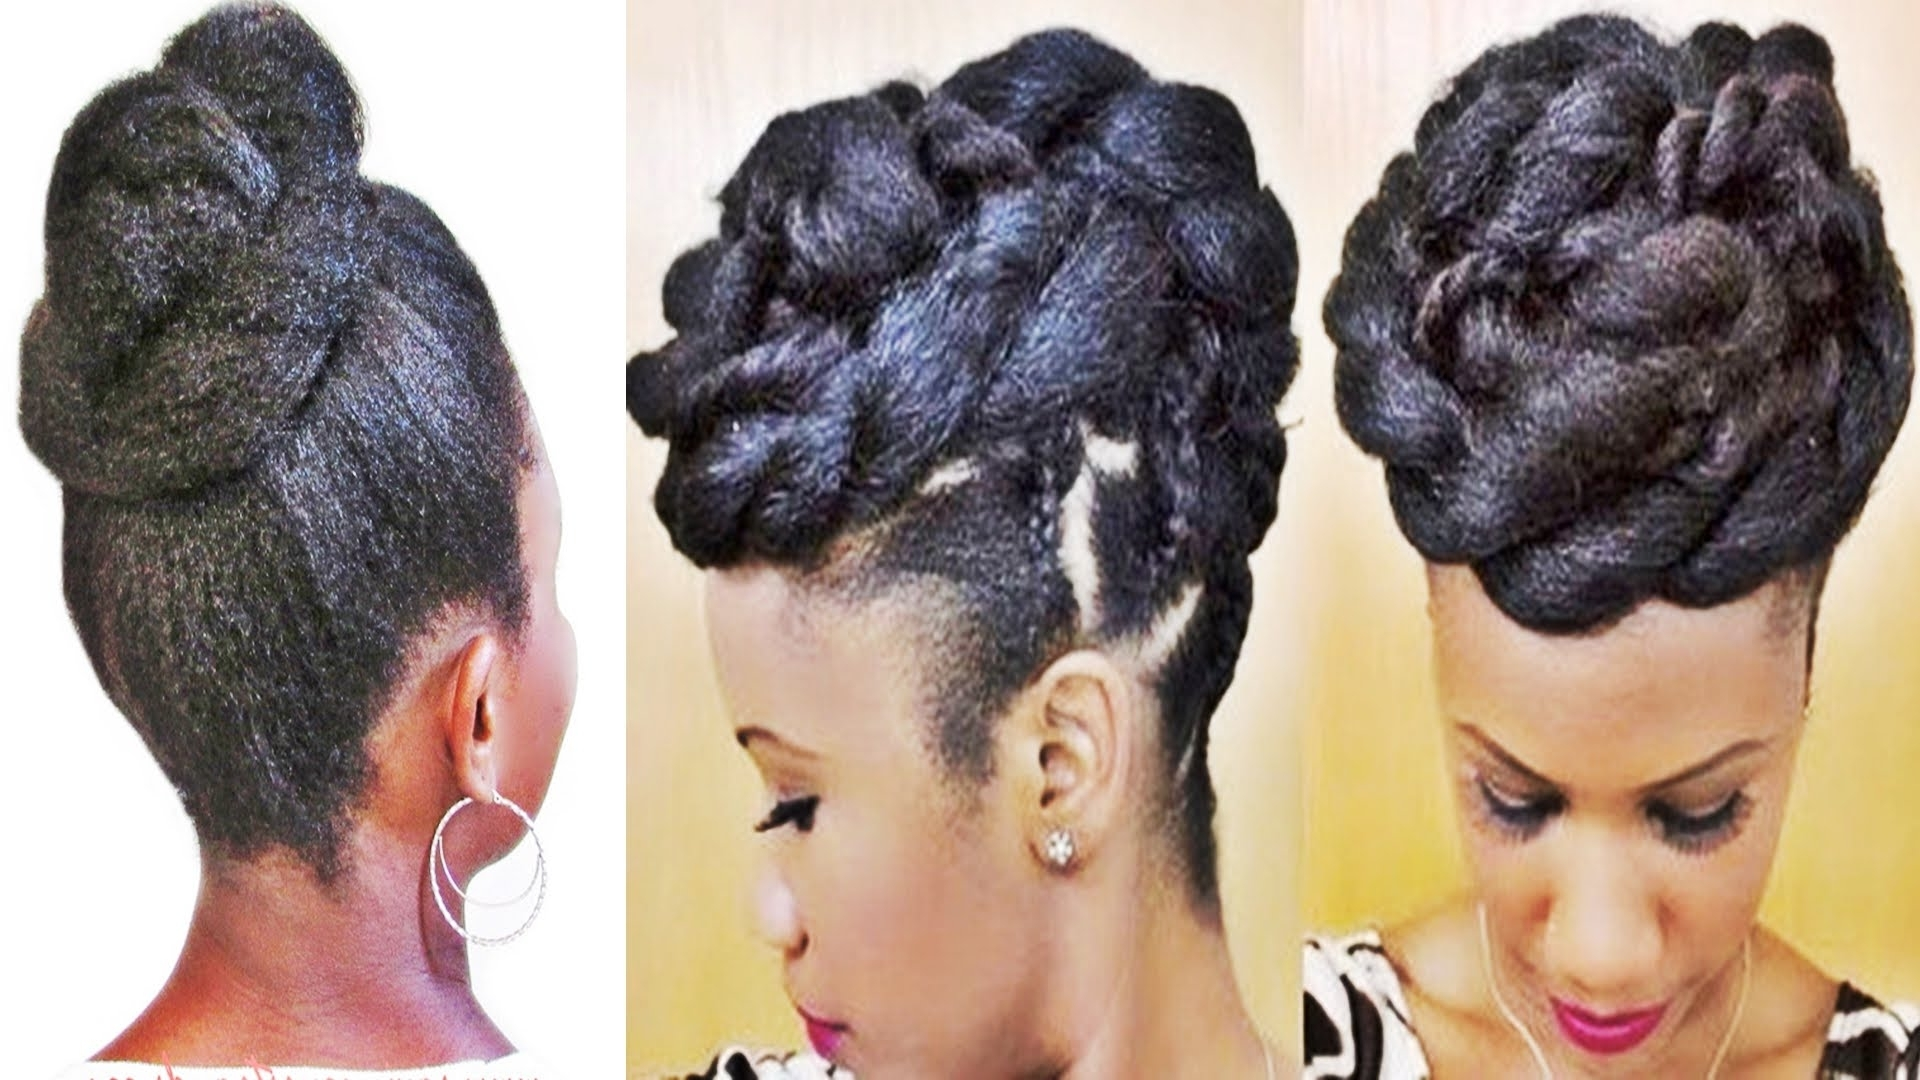 Braids And Twists Updo Hairstyle For Black Women – Youtube Pertaining To Elegant Cornrow Updo Hairstyles (View 14 of 15)